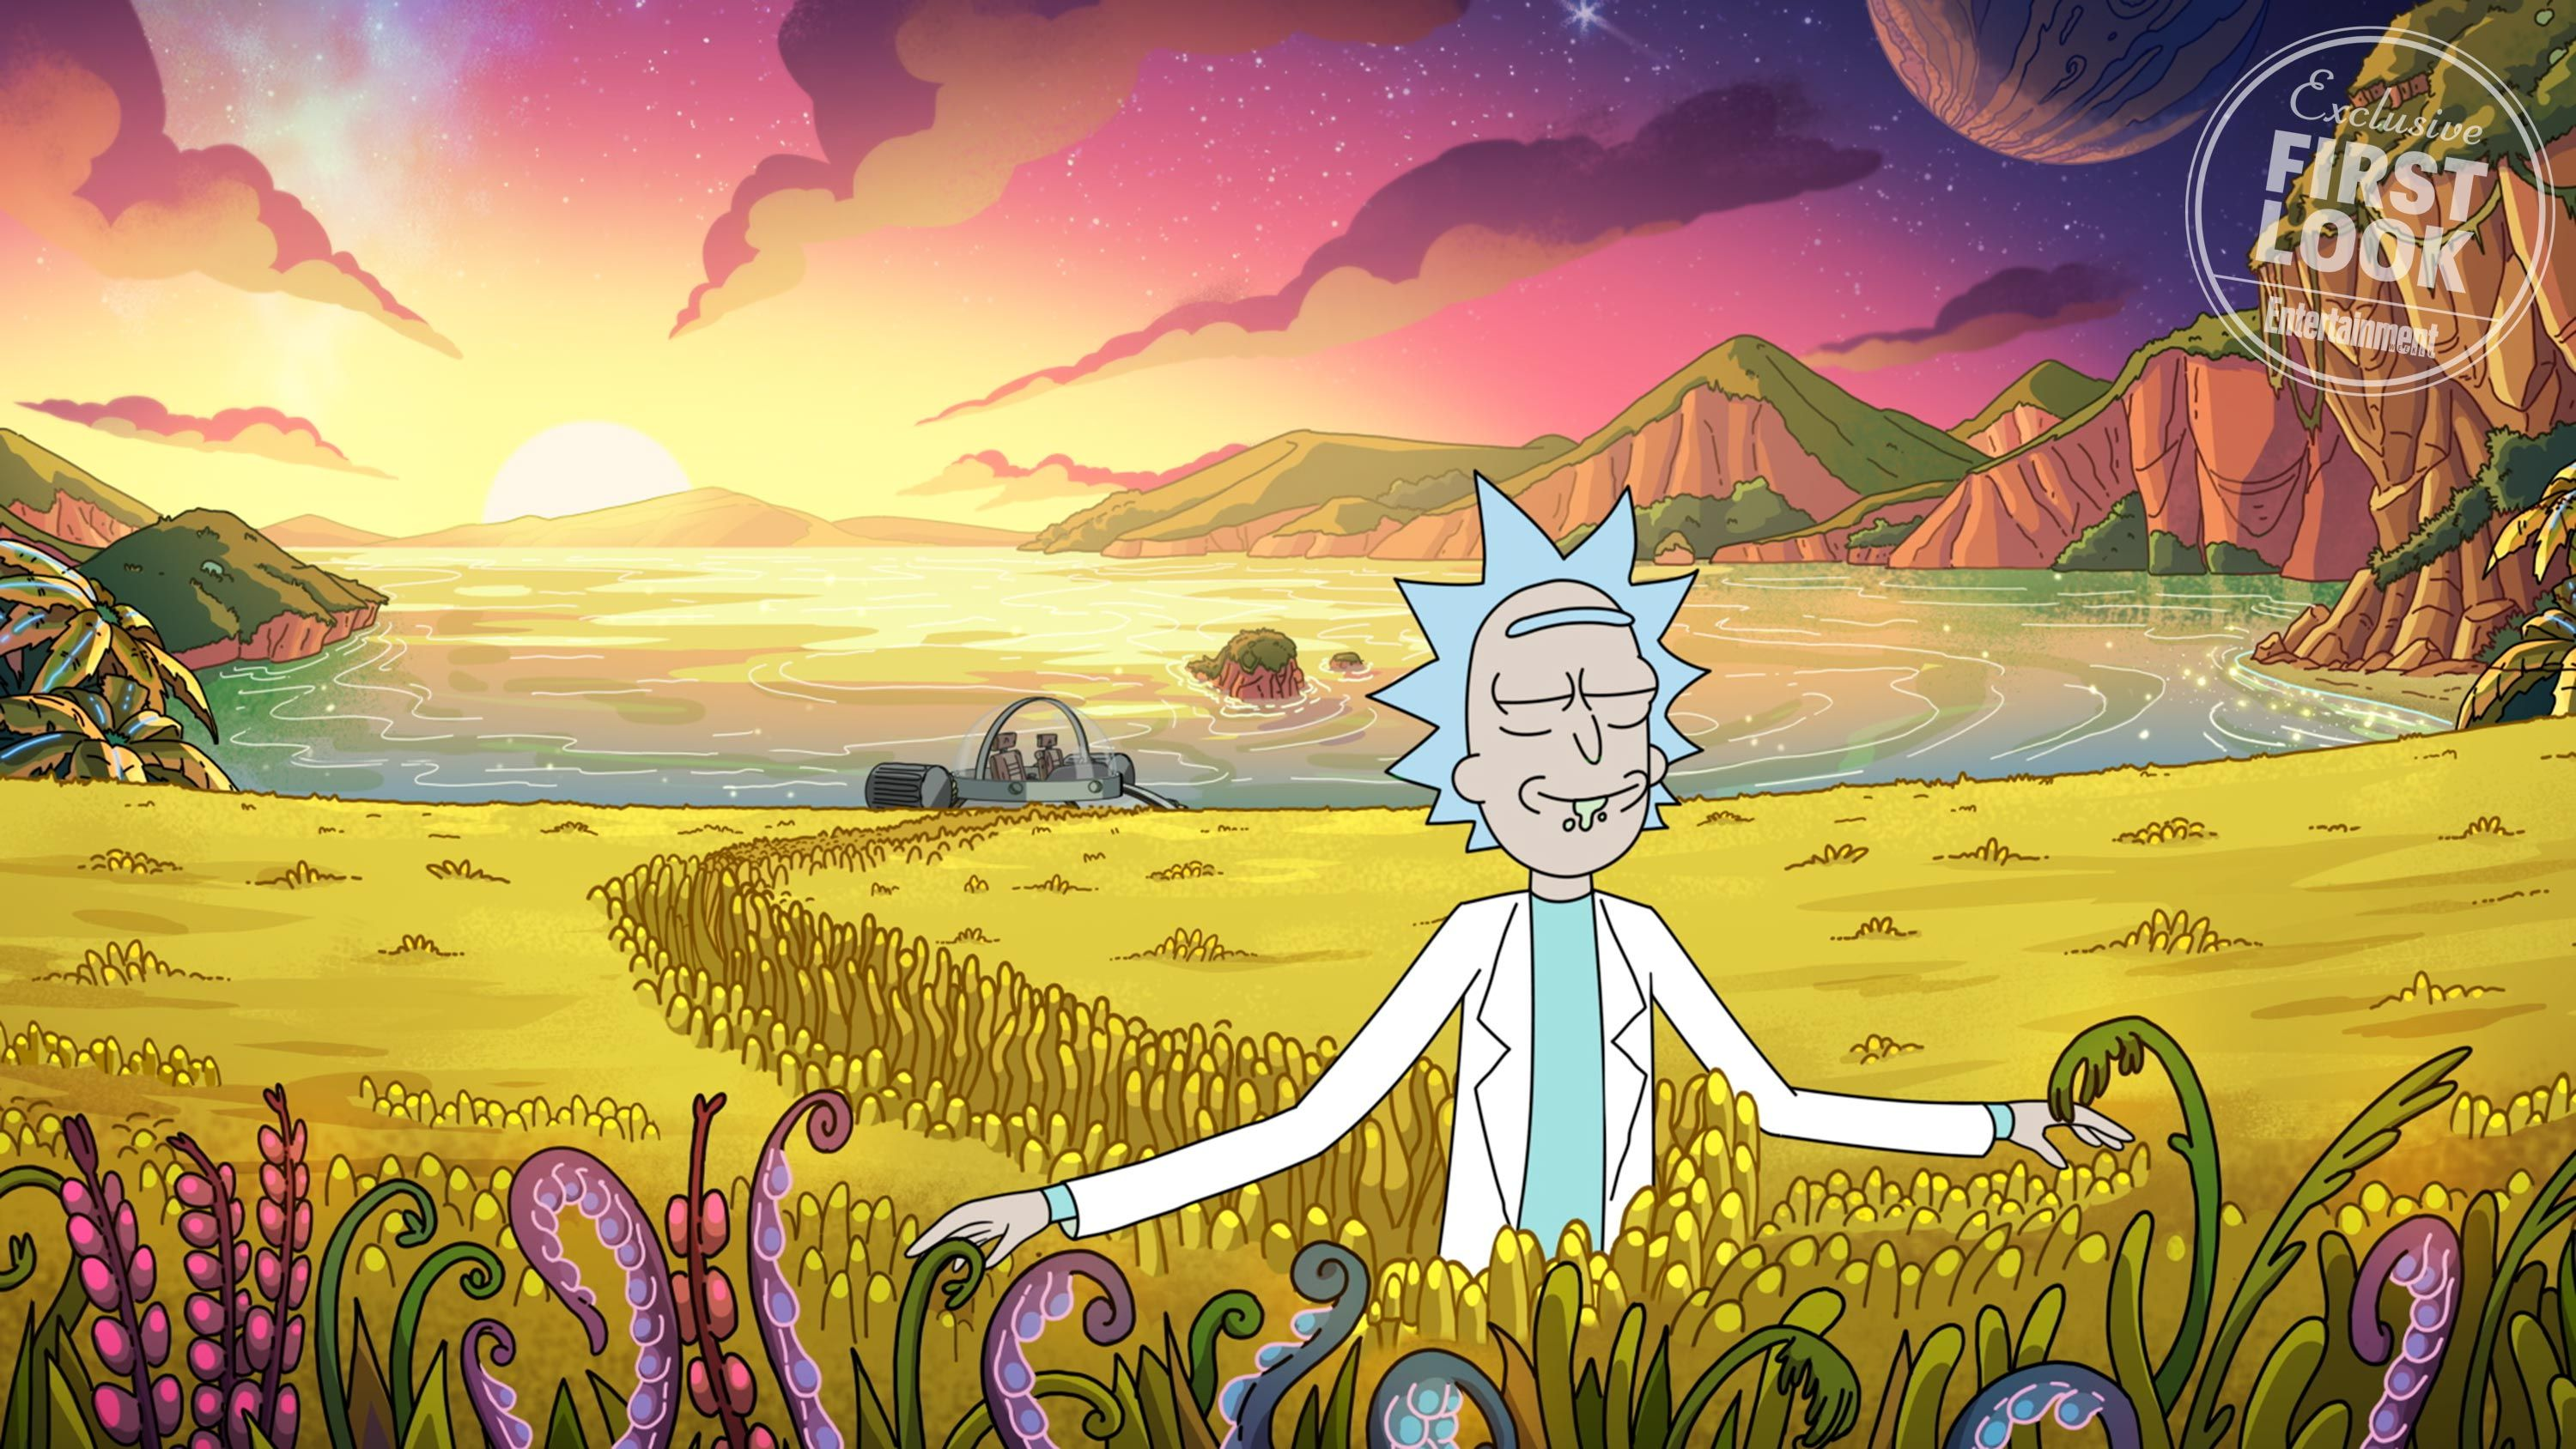 Rick And Morty First Photos From Season 4 Revealed Rick And Morty Poster Rick And Morty Season Wallpaper Pc